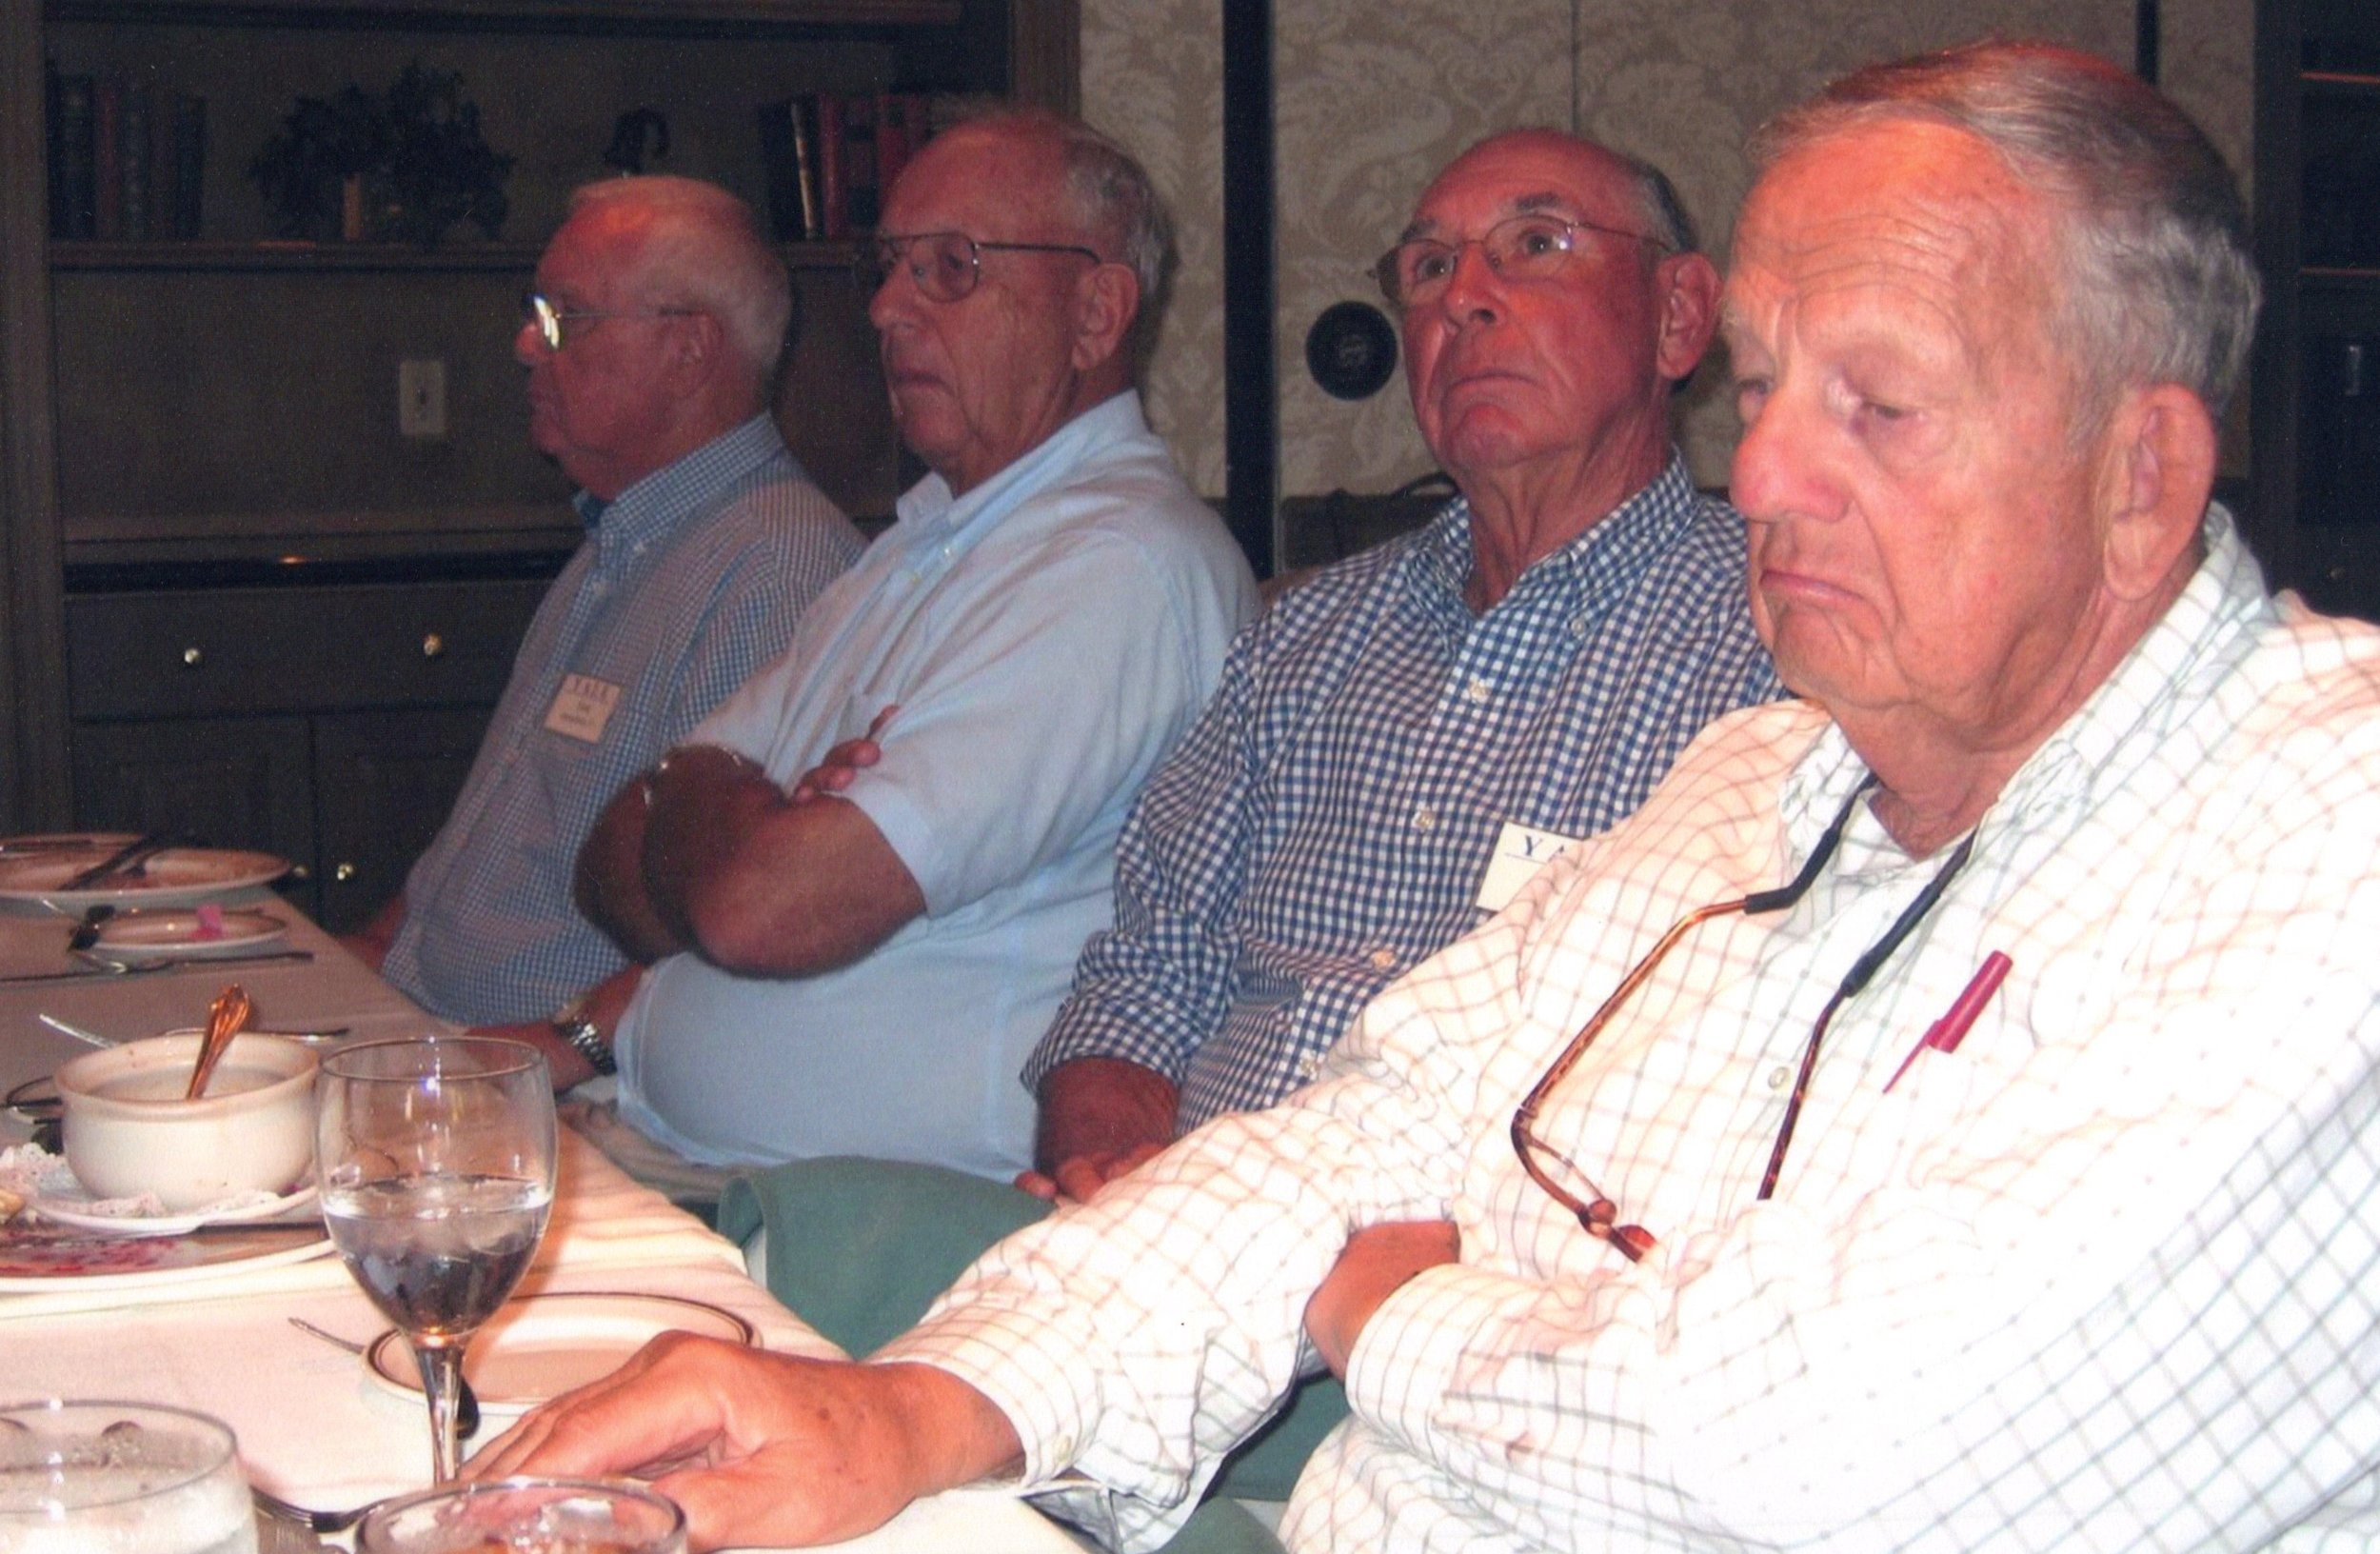 12_9_2004 - MONTHLY LUNCHEON - THE CLUB AT PELICAN BAY 3.jpg